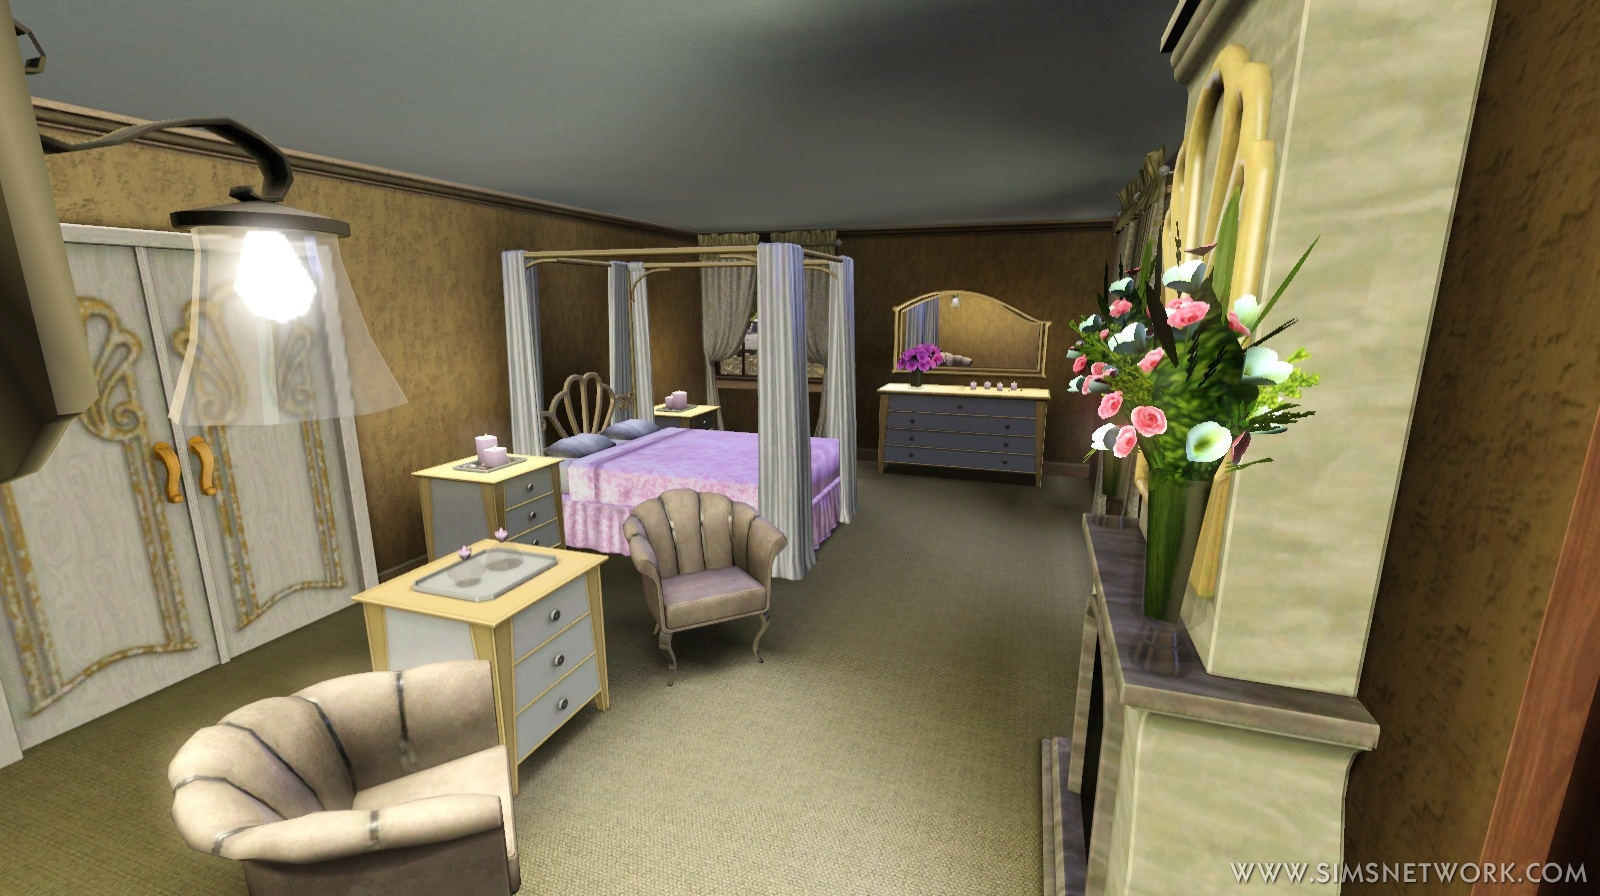 The Sims 3 Master Suite Stuff Review SNW SimsNetworkcom